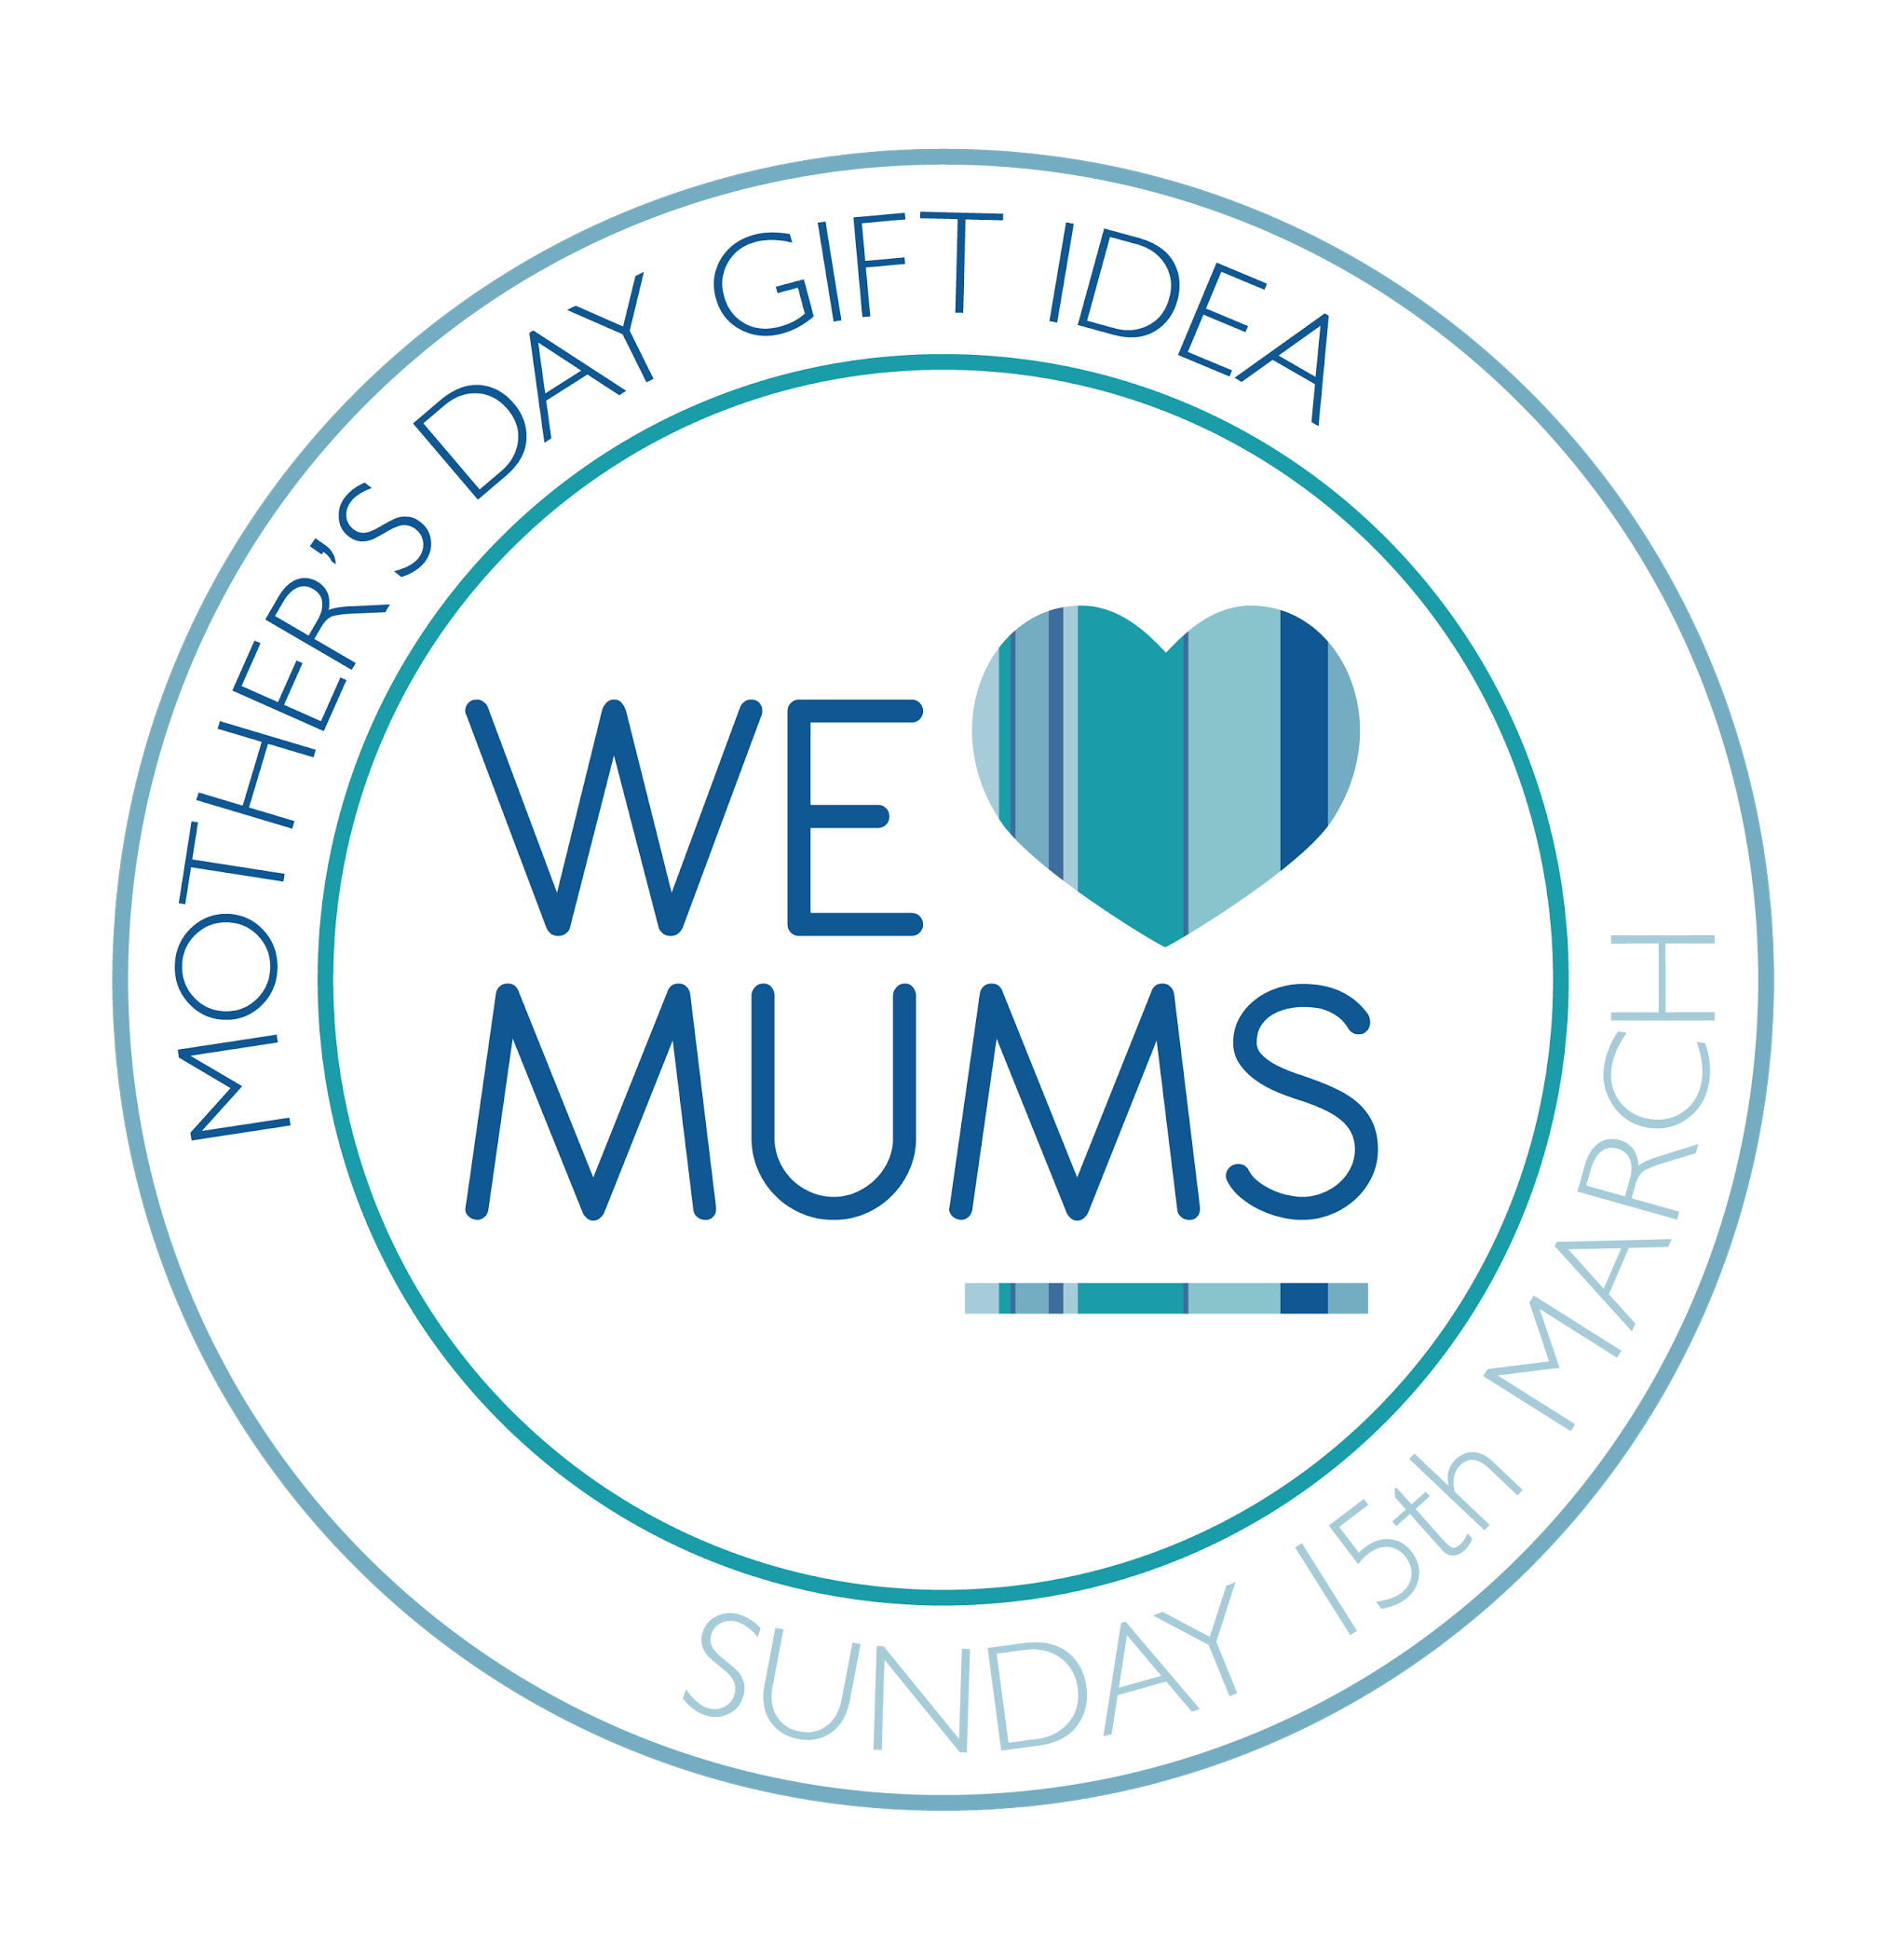 Mother's Day Gift Ideas for 2015